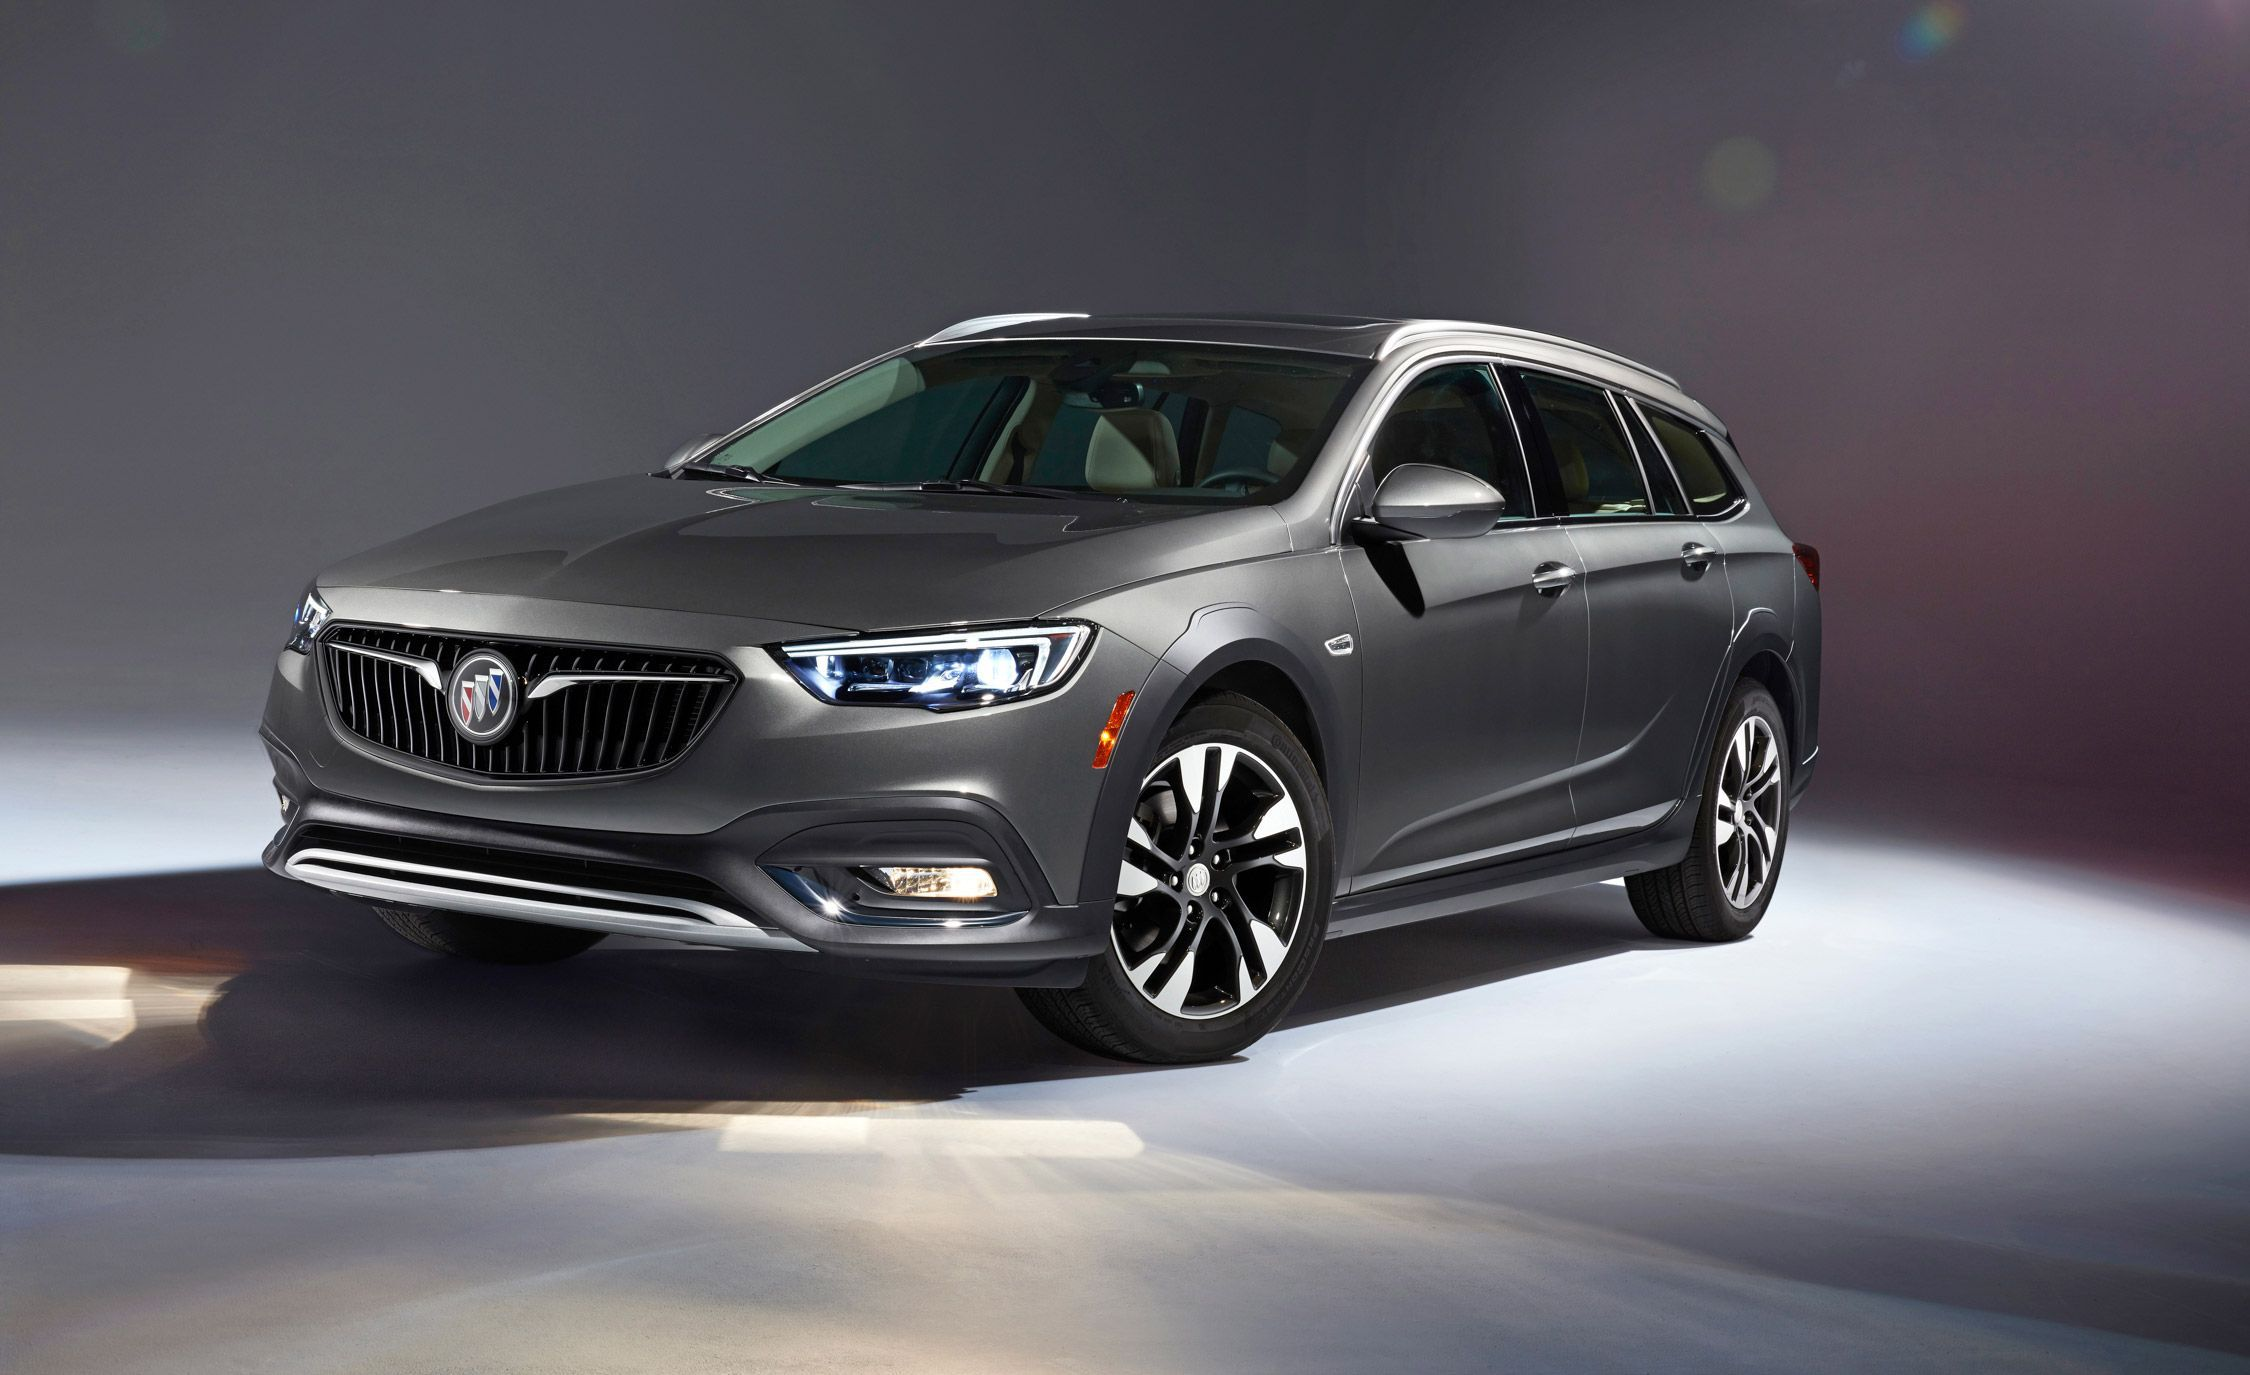 2018 Buick Regal Tourx Dissected Exterior Chassis Powertrain And More Buick Regal Buick Buick Cascada